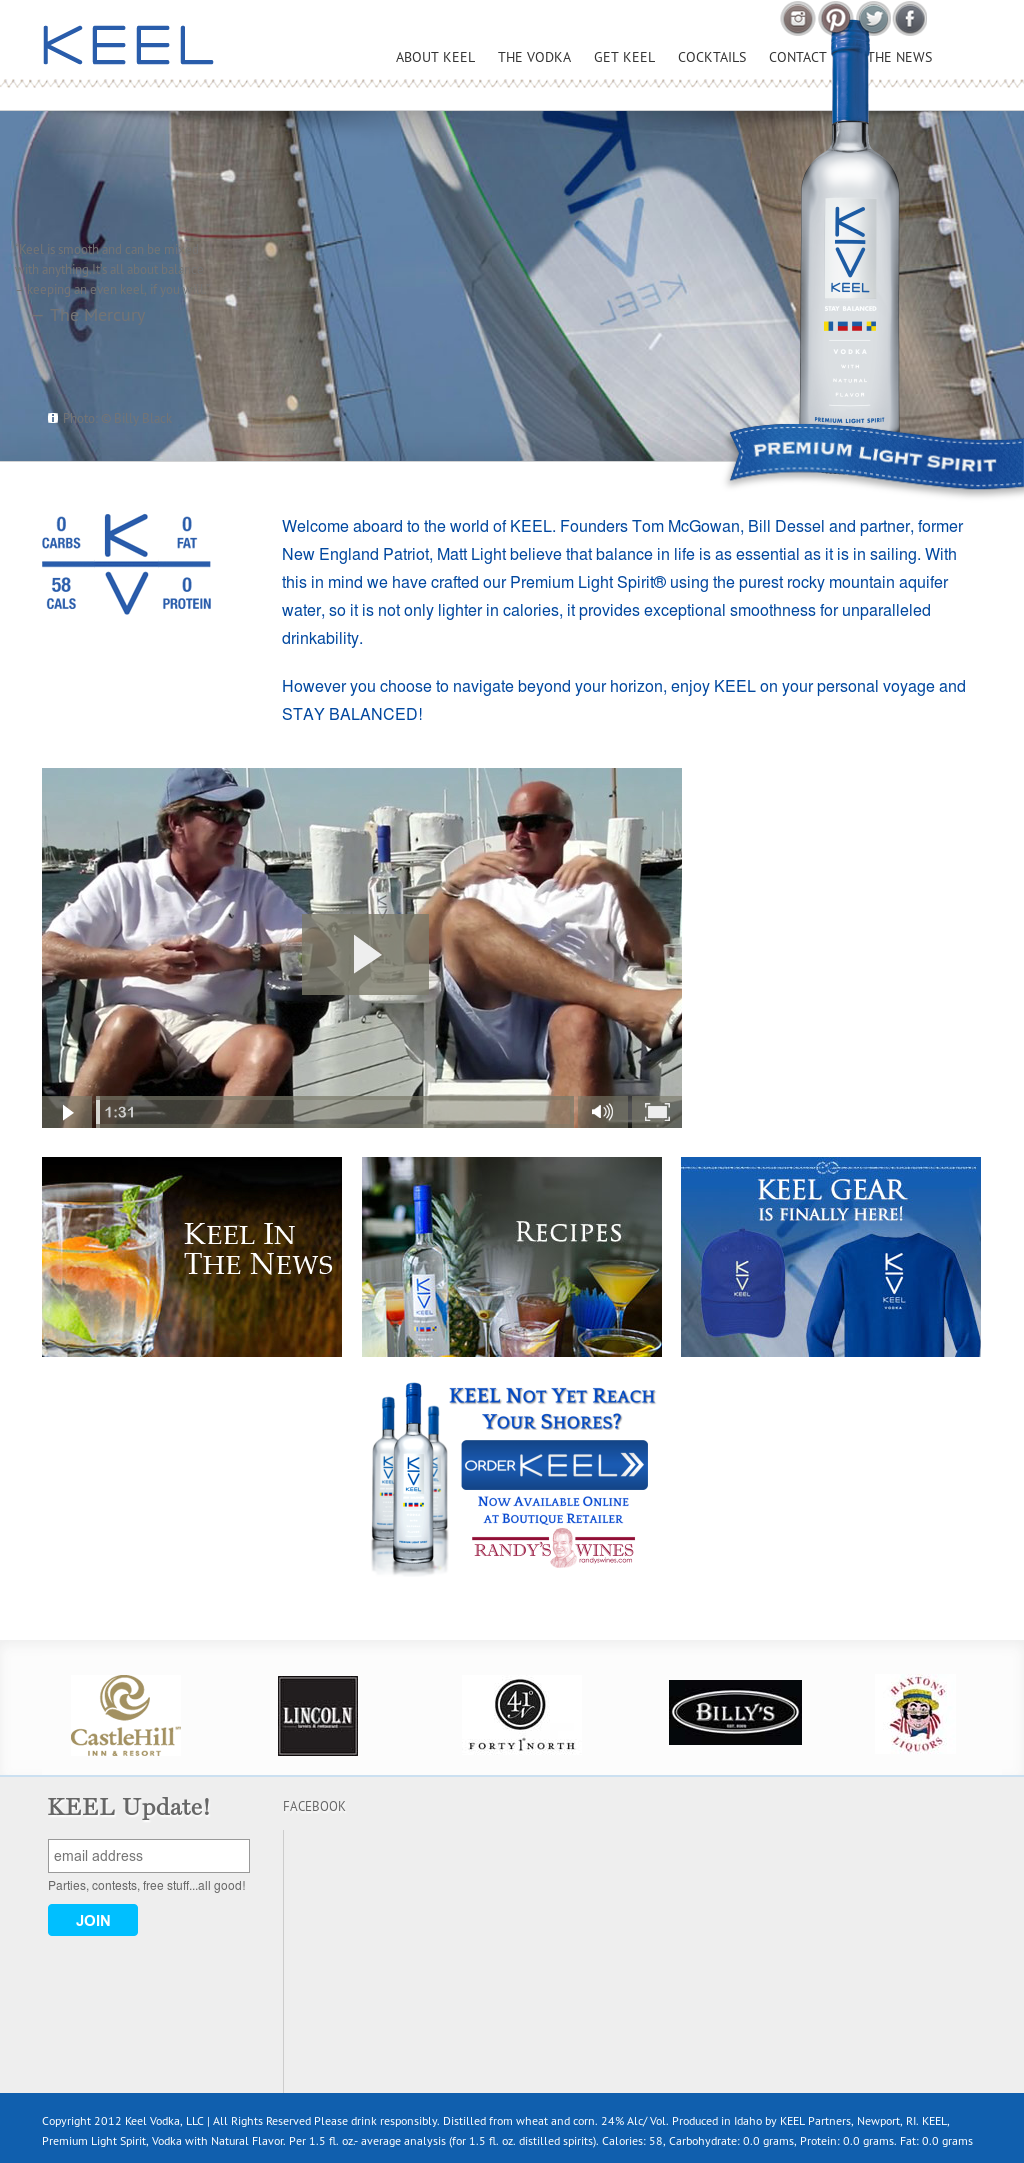 Keel Vodka Competitors, Revenue and Employees - Owler